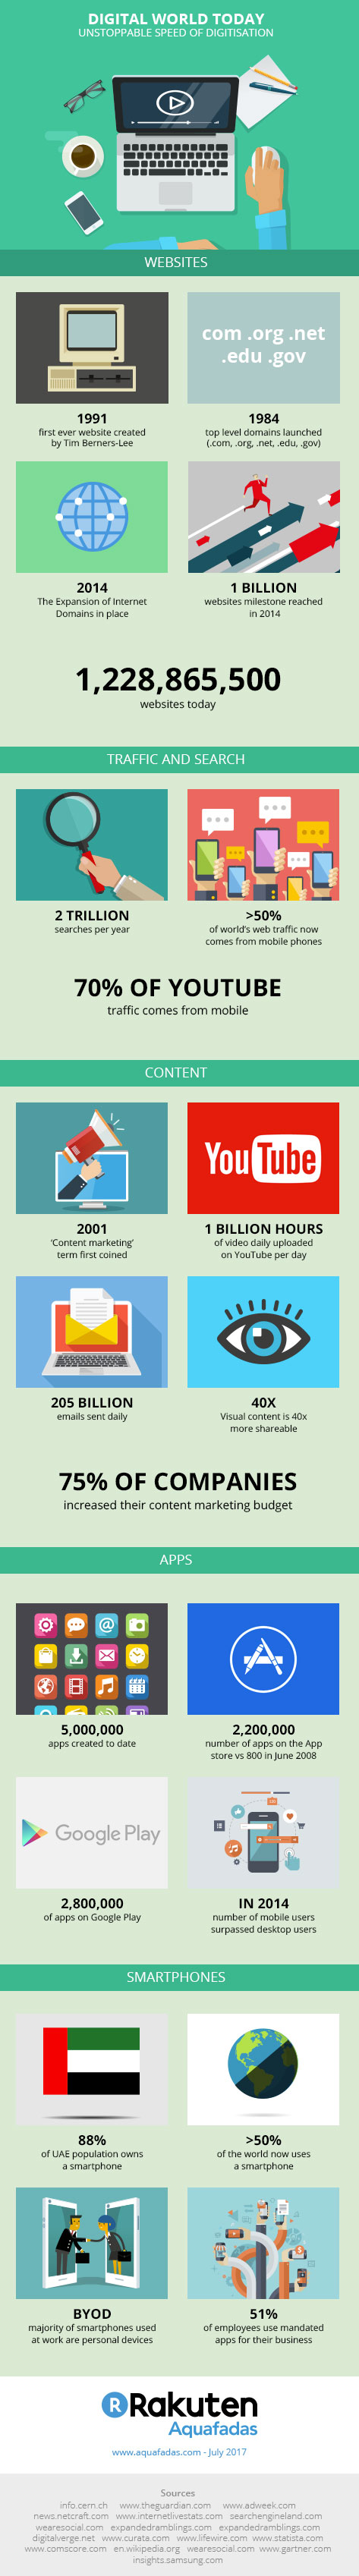 Digital world today: discover the latest useful statistics